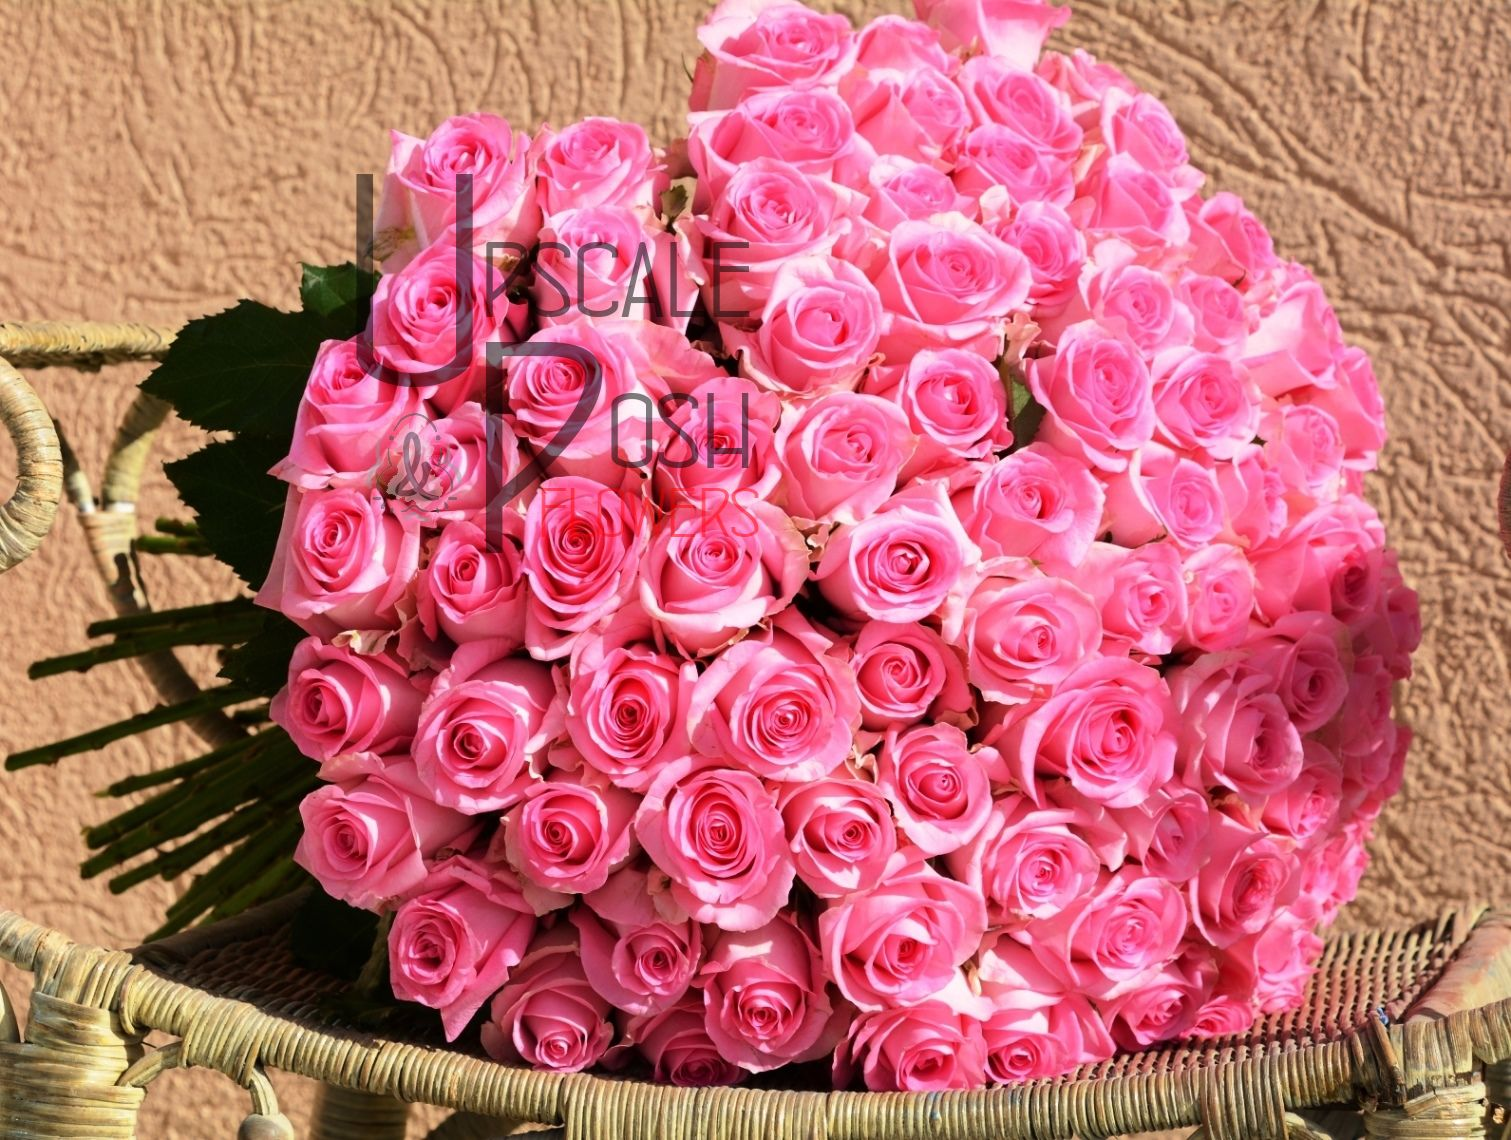 Pink Rose Bouquet | Upscale and Posh Flowers